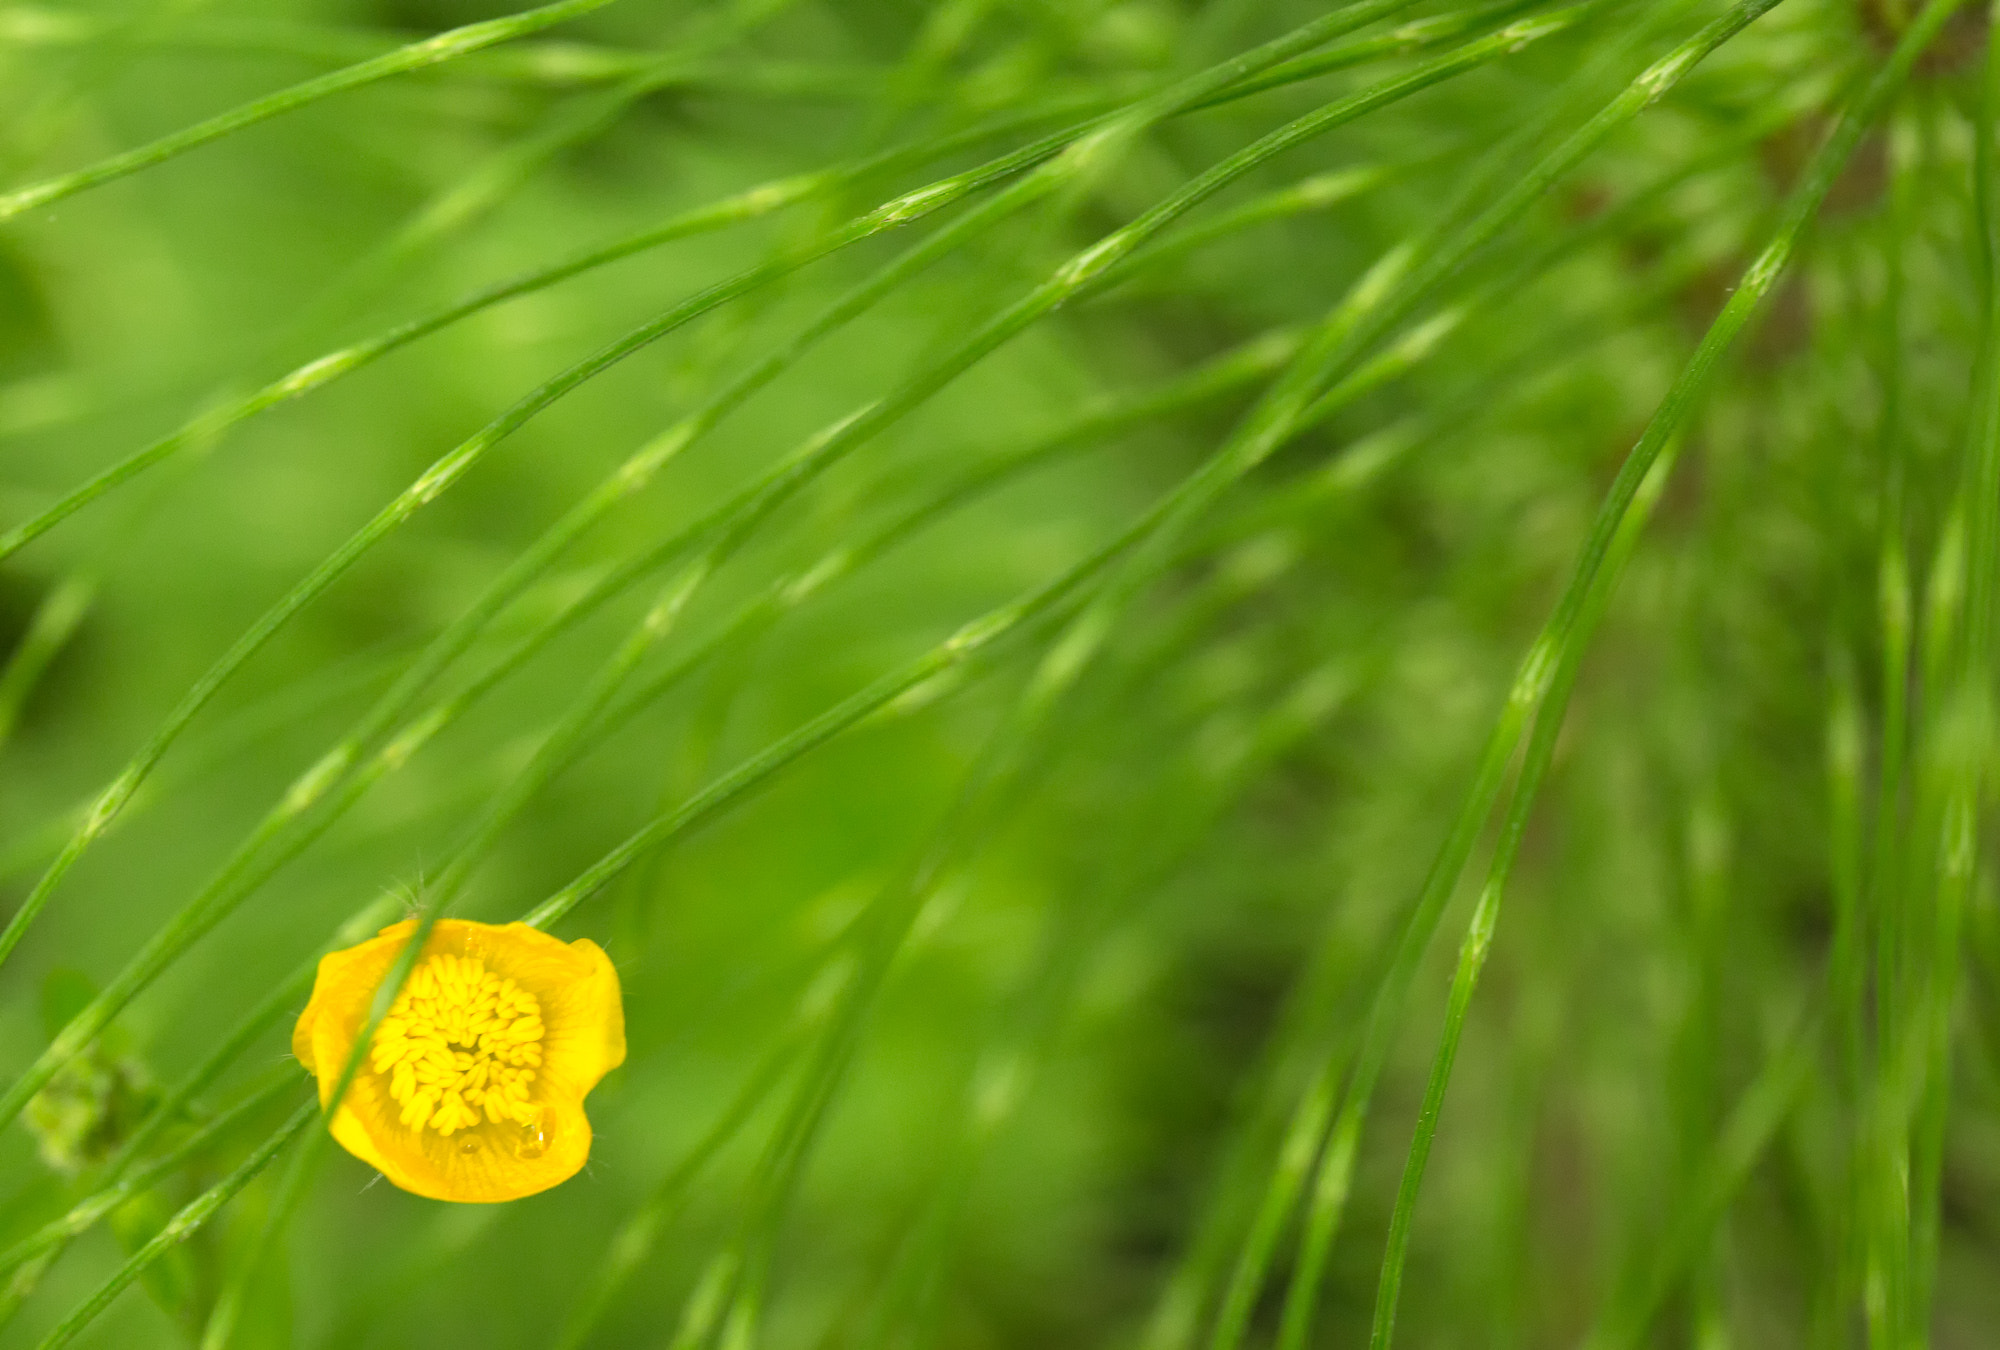 Photograph Yellow and Green by Joseph Calev on 500px